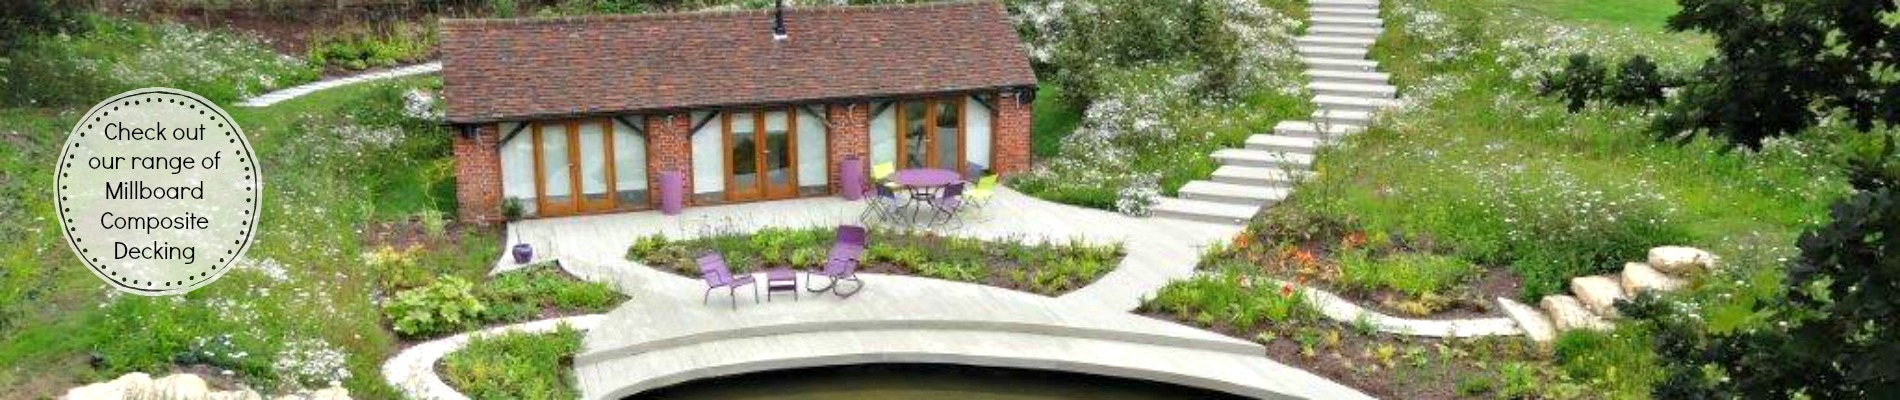 Link to page Garden House Design Millboard Composite Decking